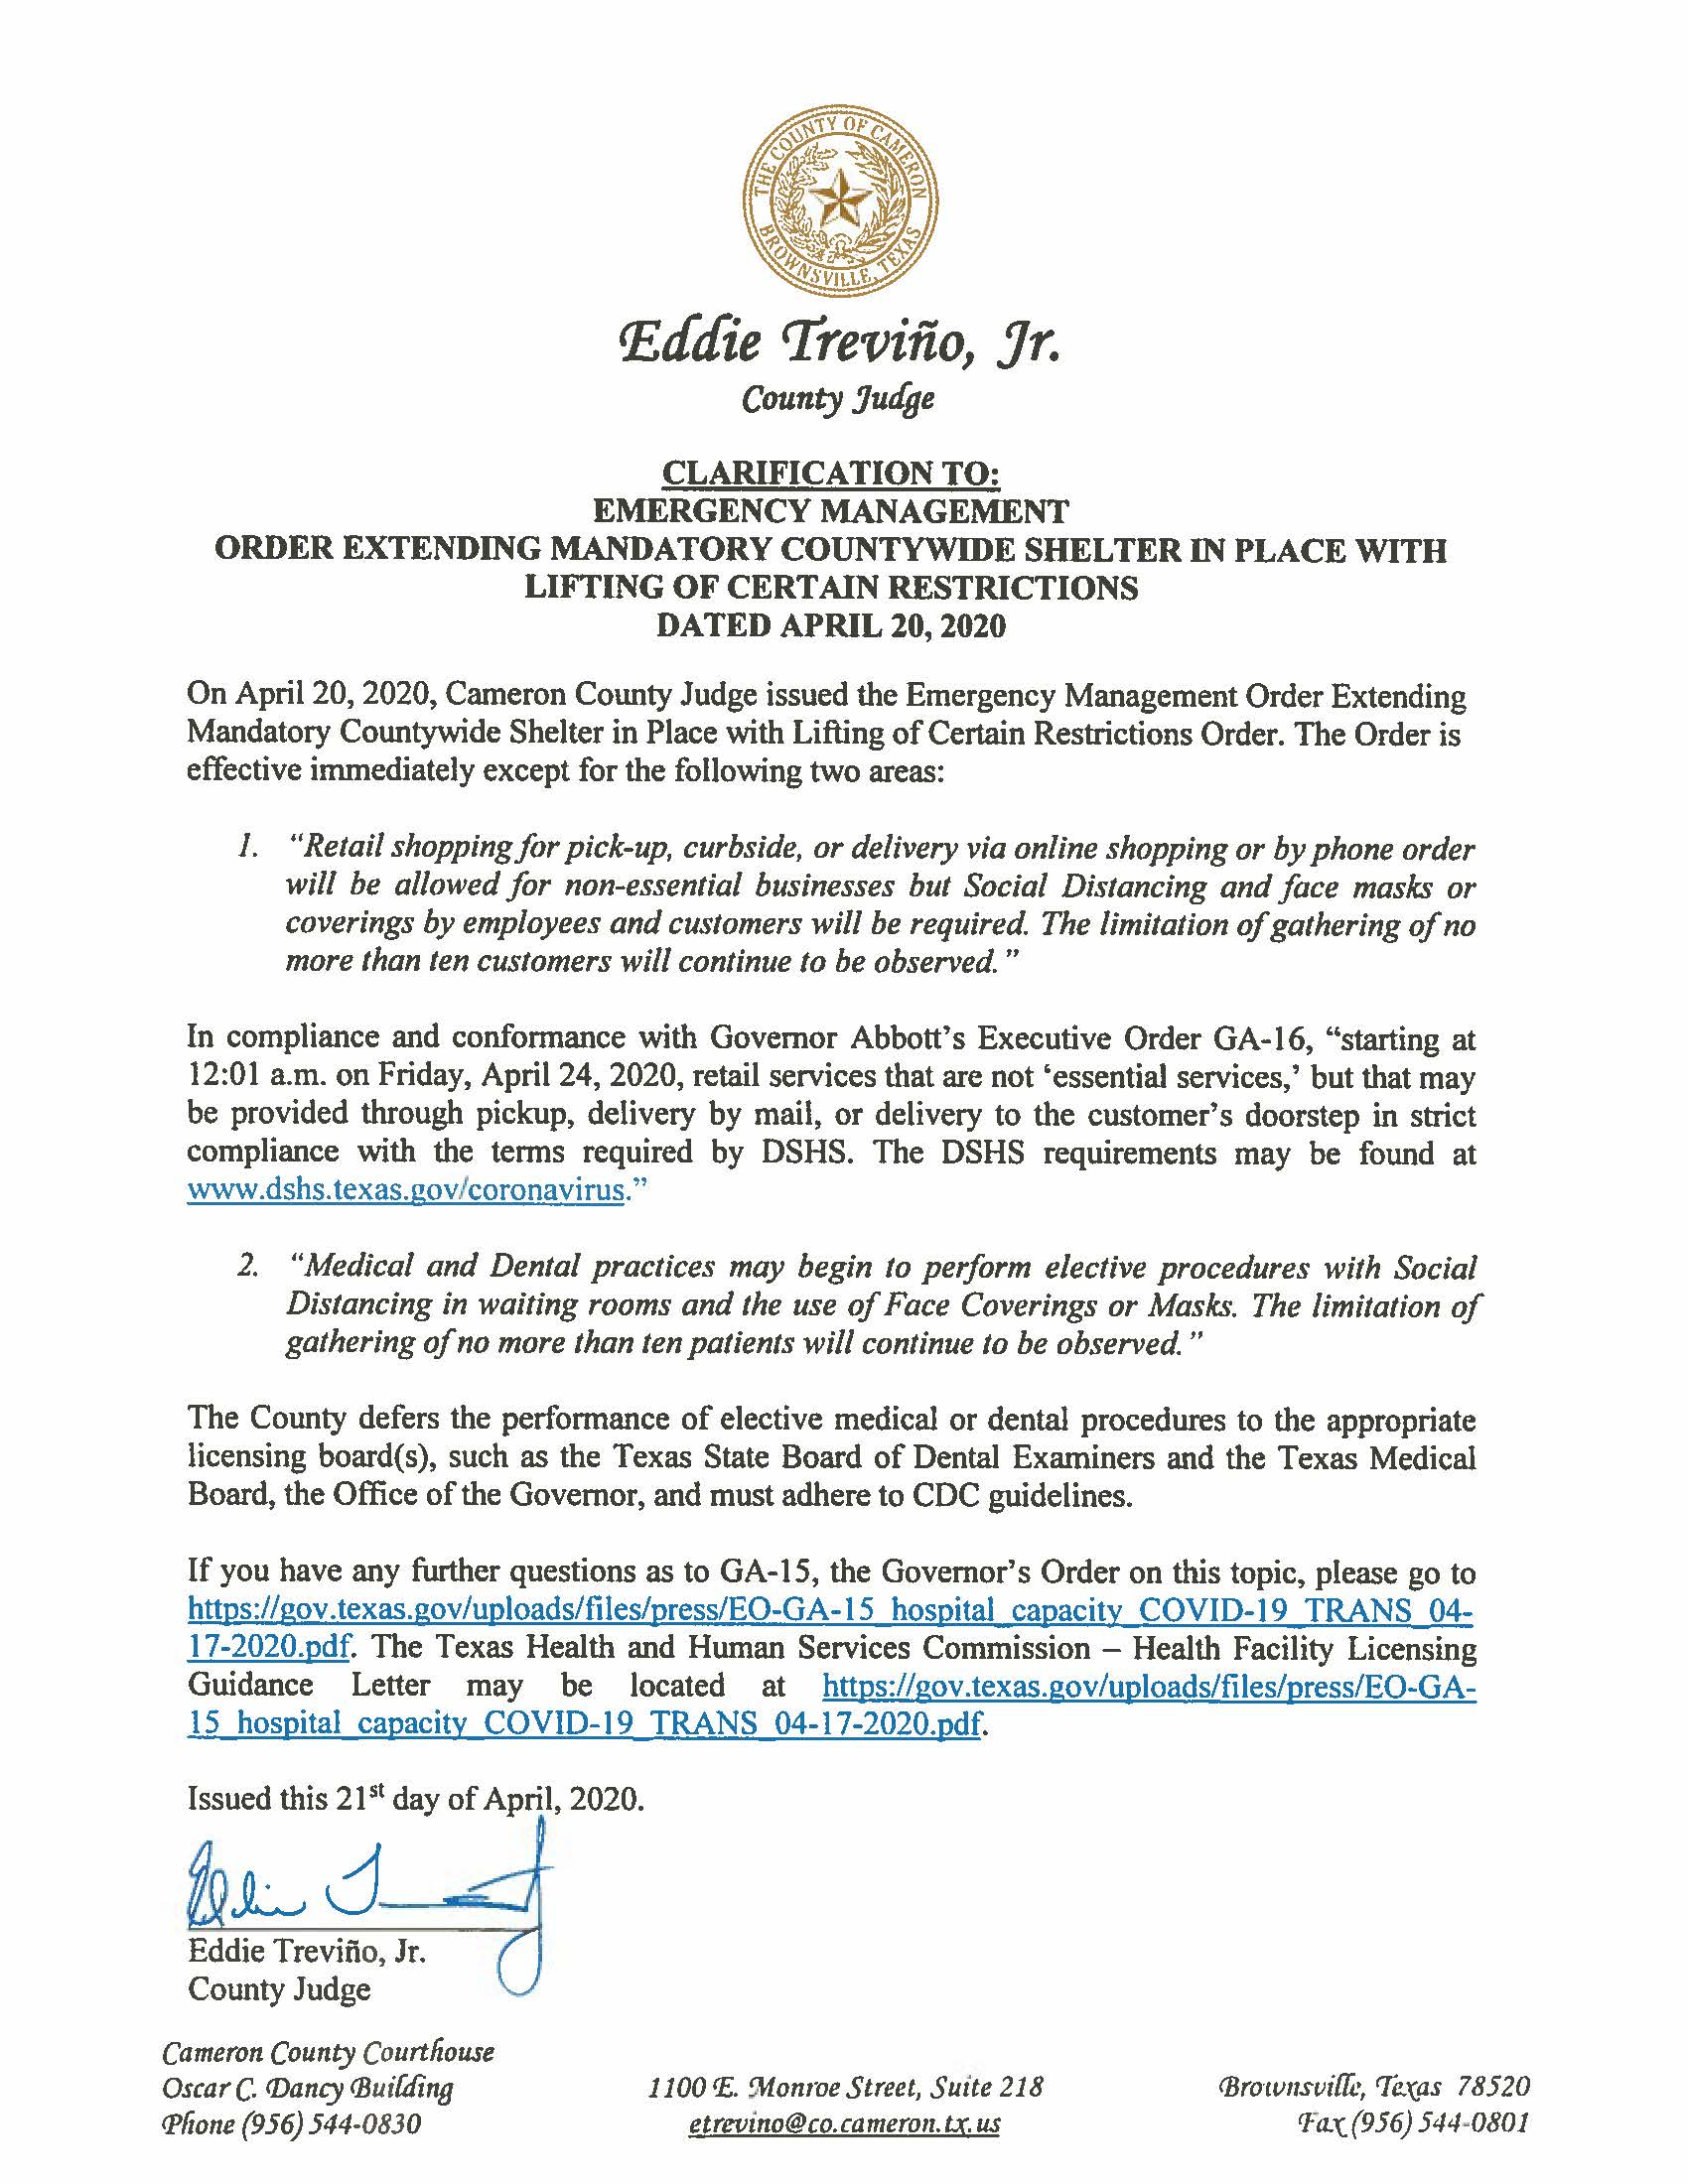 04.21.2020 Clarification To Emergency Management Order With Lifting Of Certain Restrictions